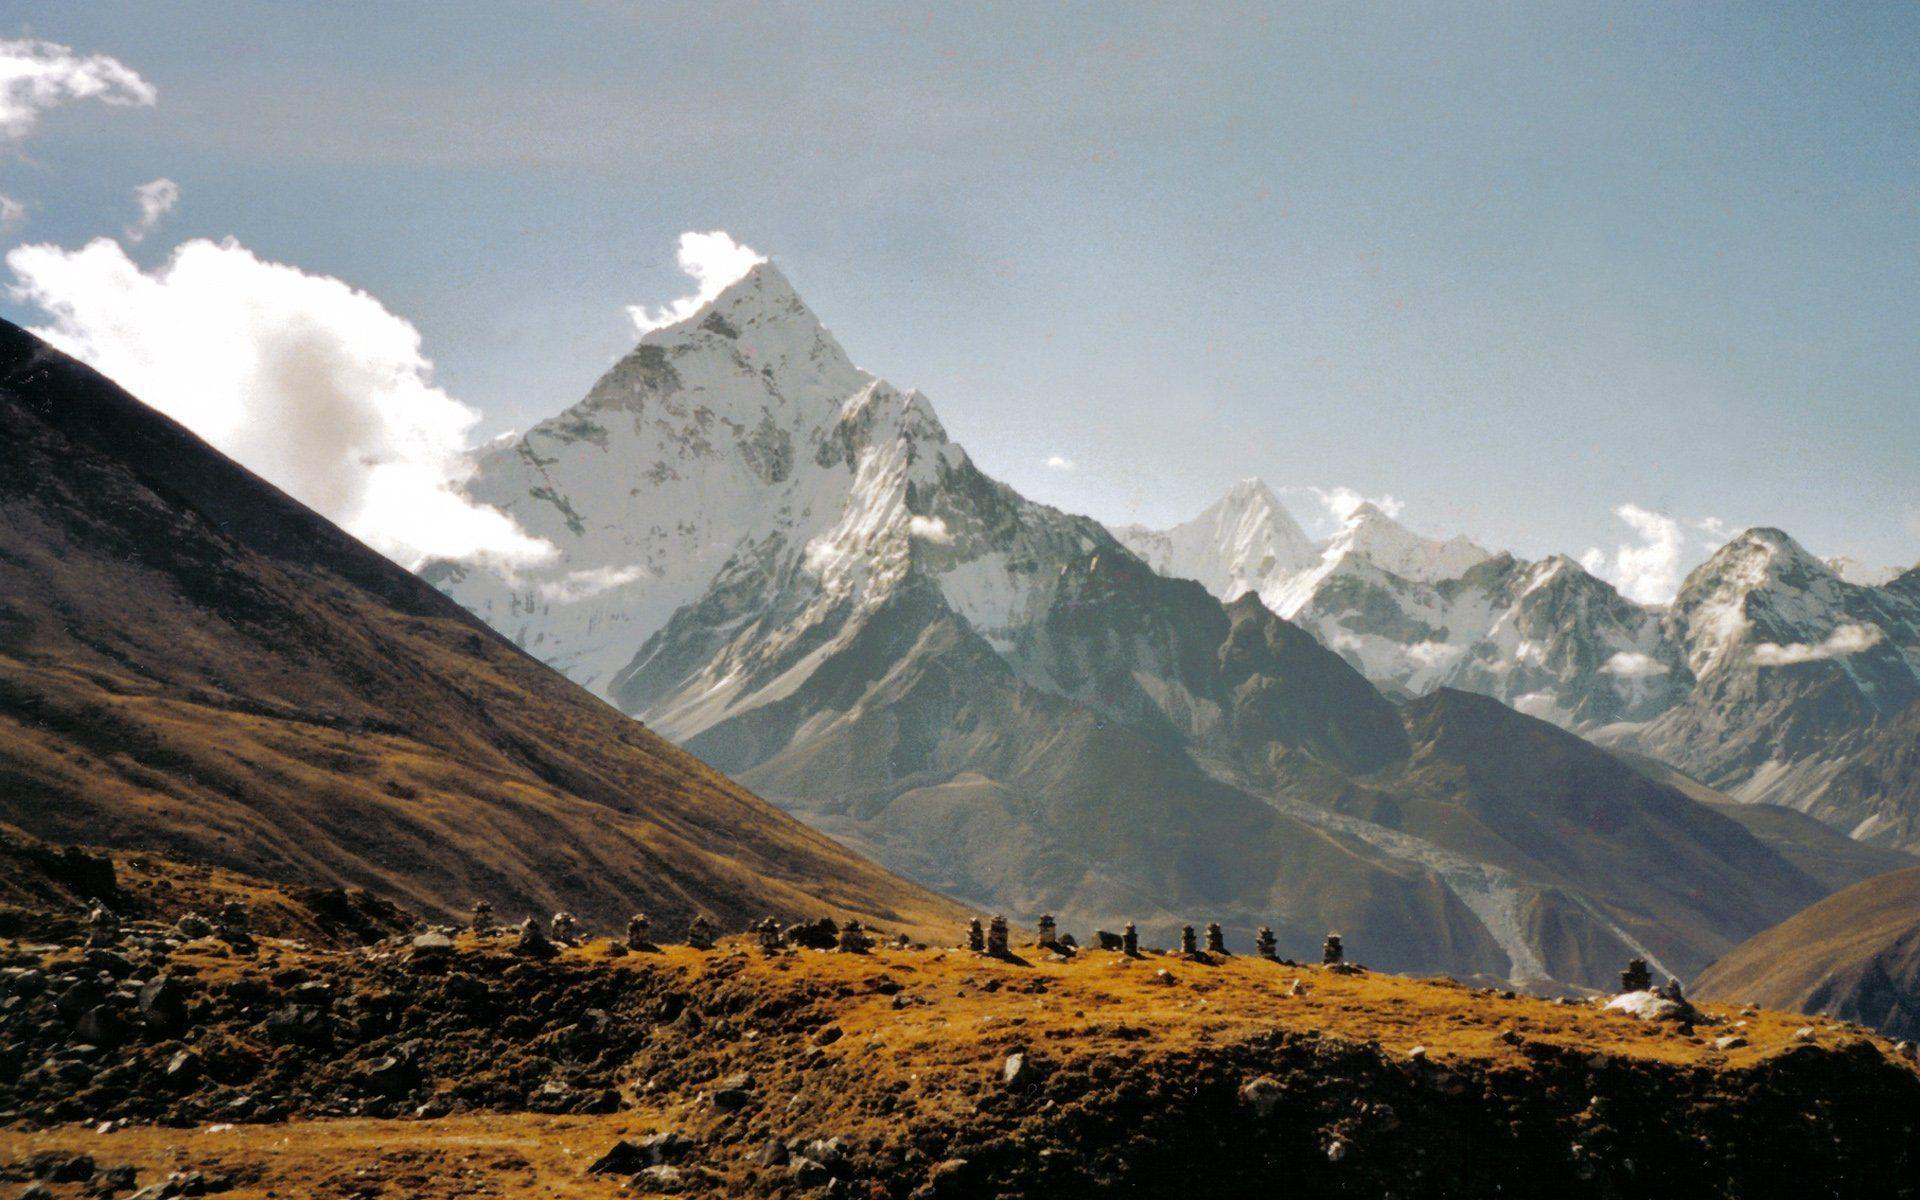 Nepal wallpapers wallpaper cave - Photo of wallpaper ...